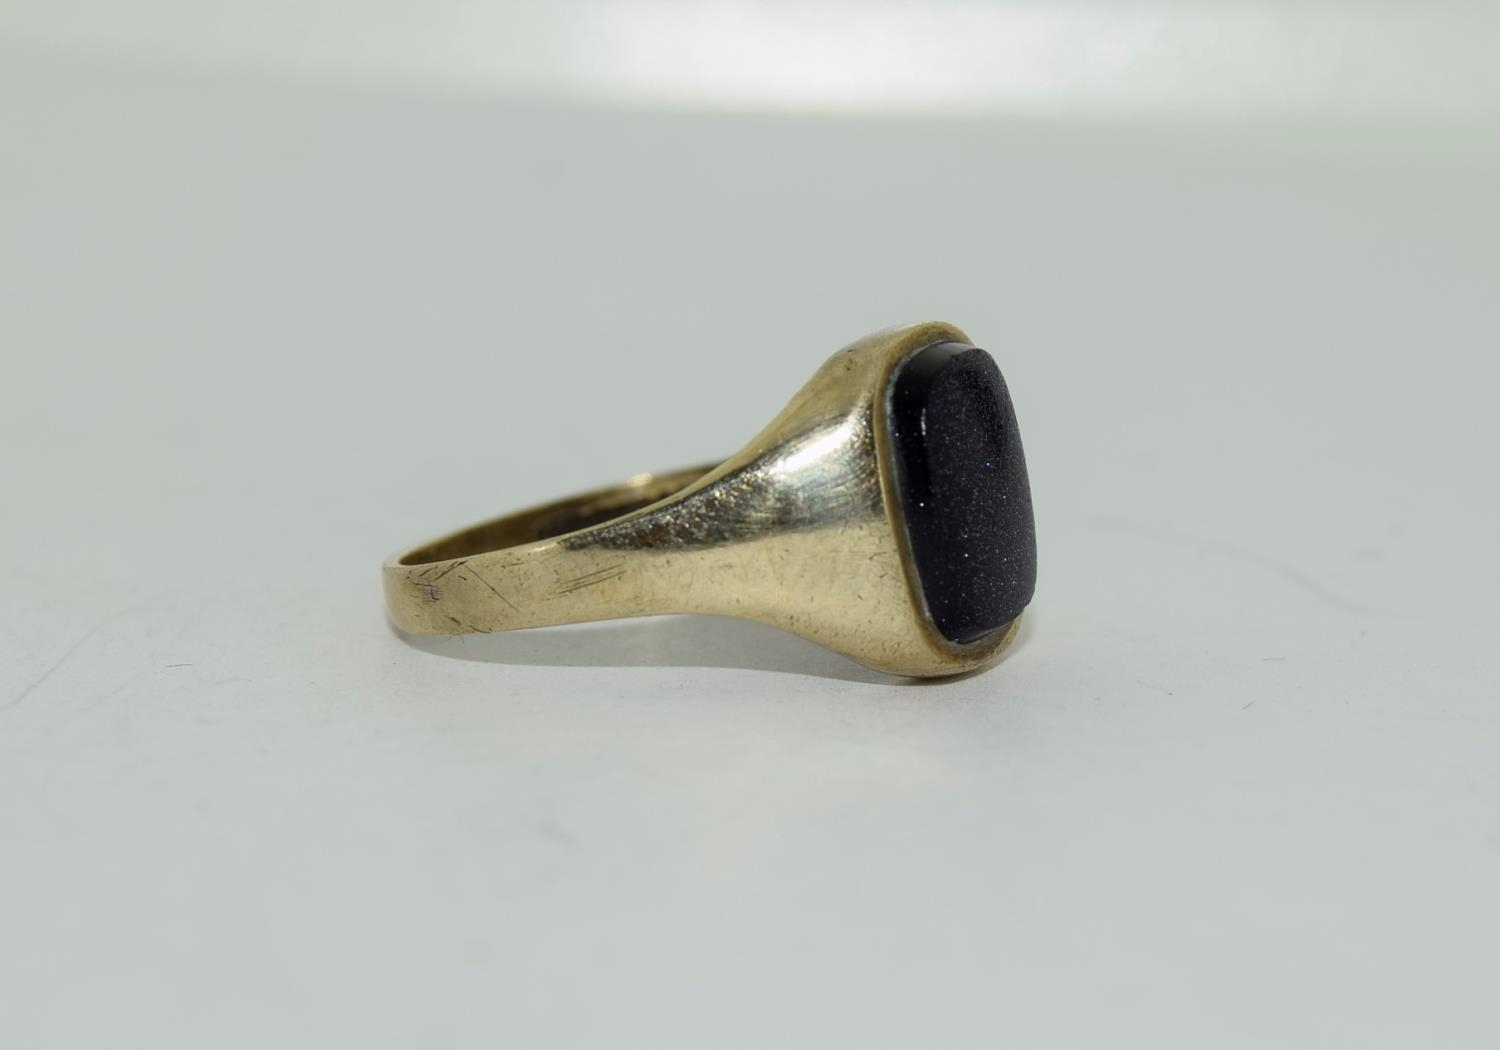 9ct gold gents sygnet ring set with unpolished amethyst centre stone size Q - Image 4 of 12